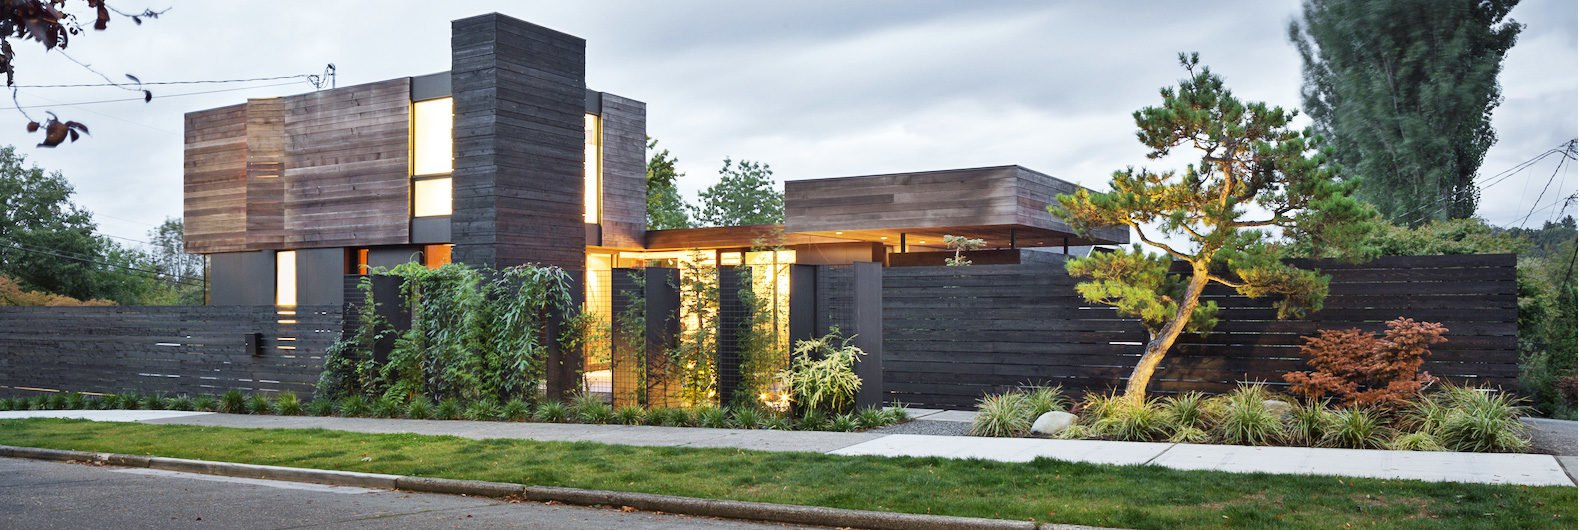 Mw Works Architecture - Light filled timber home is a modern zen haven in seattle